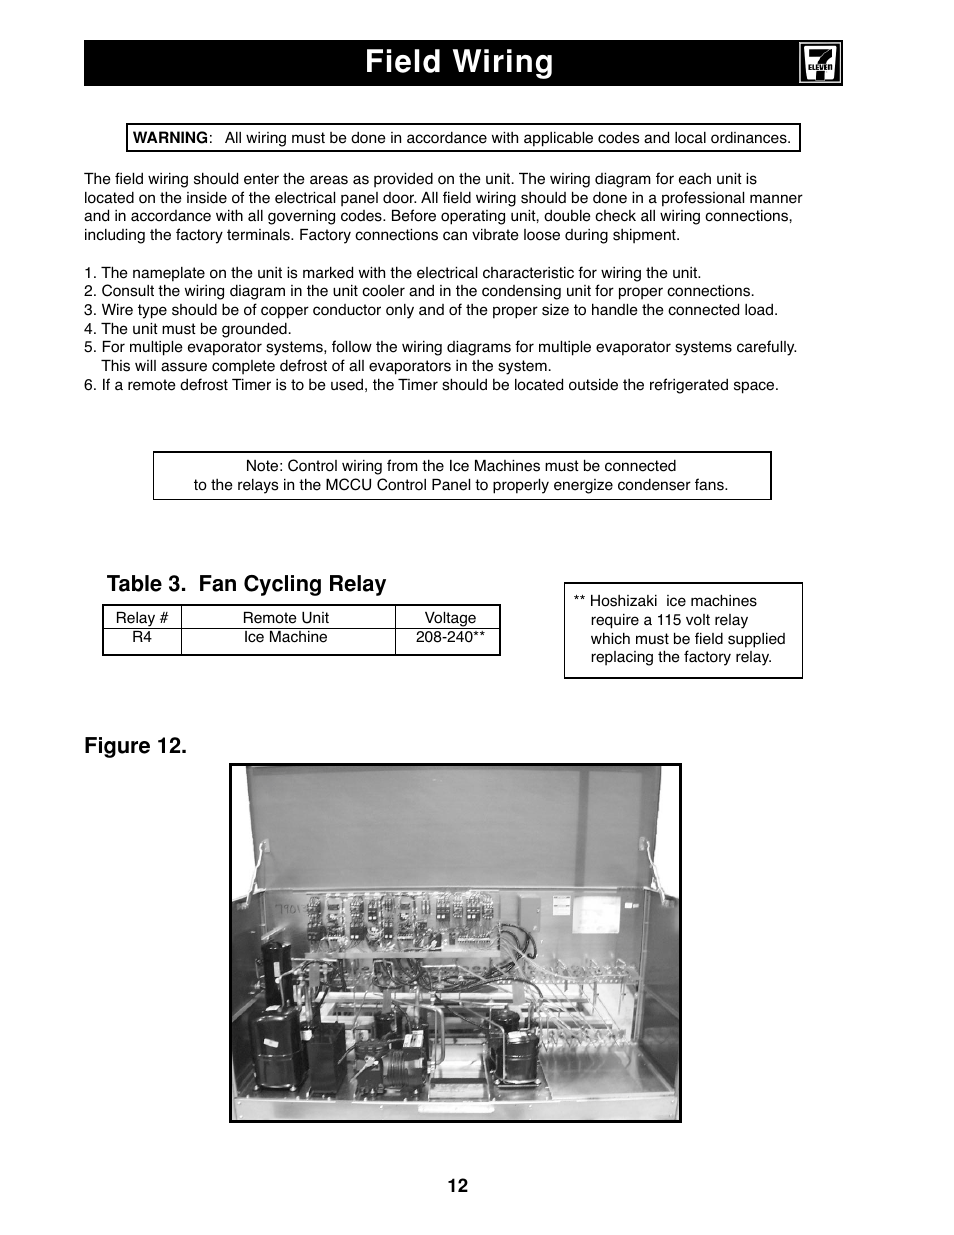 heatcraft refrigeration wiring diagrams all wiring diagram hvac contactor wiring heatcraft refrigeration wiring diagrams wiring diagram online trane furnace wiring diagram field wiring, figure 12